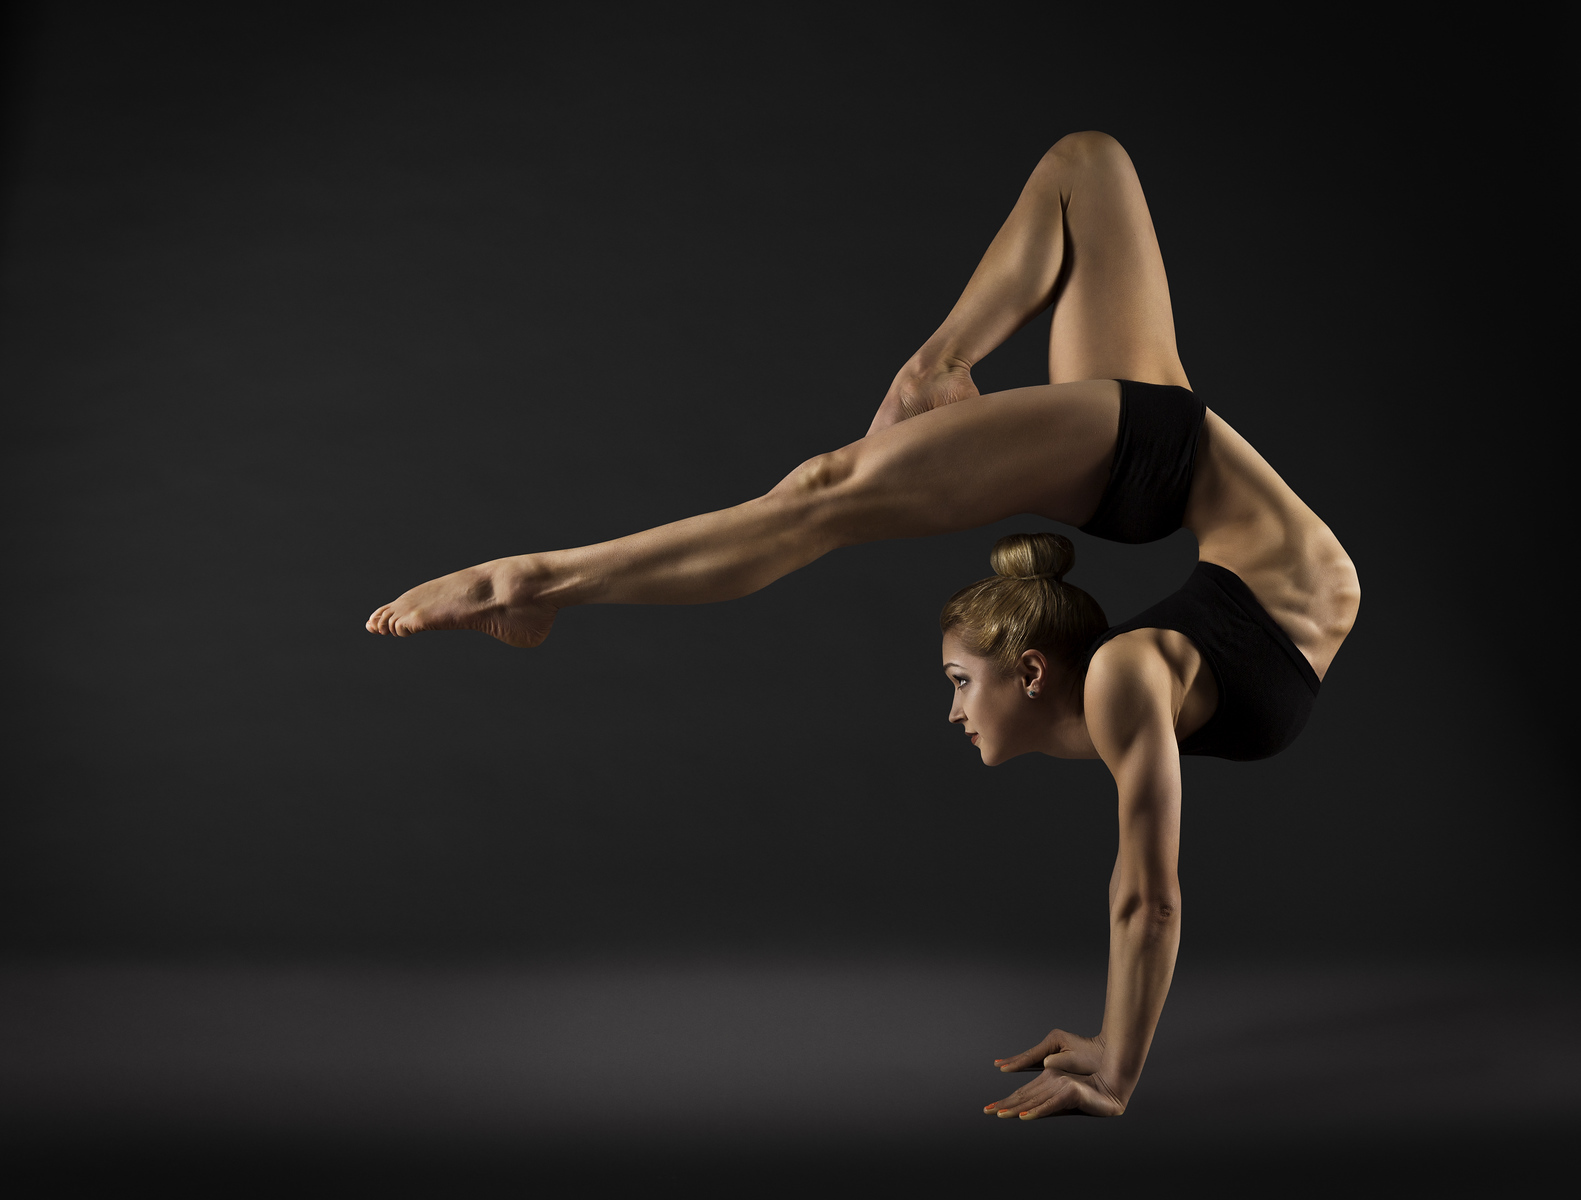 Acrobat Performer, Circus Woman Hand Stand, Gymnastics Back Bend Pose